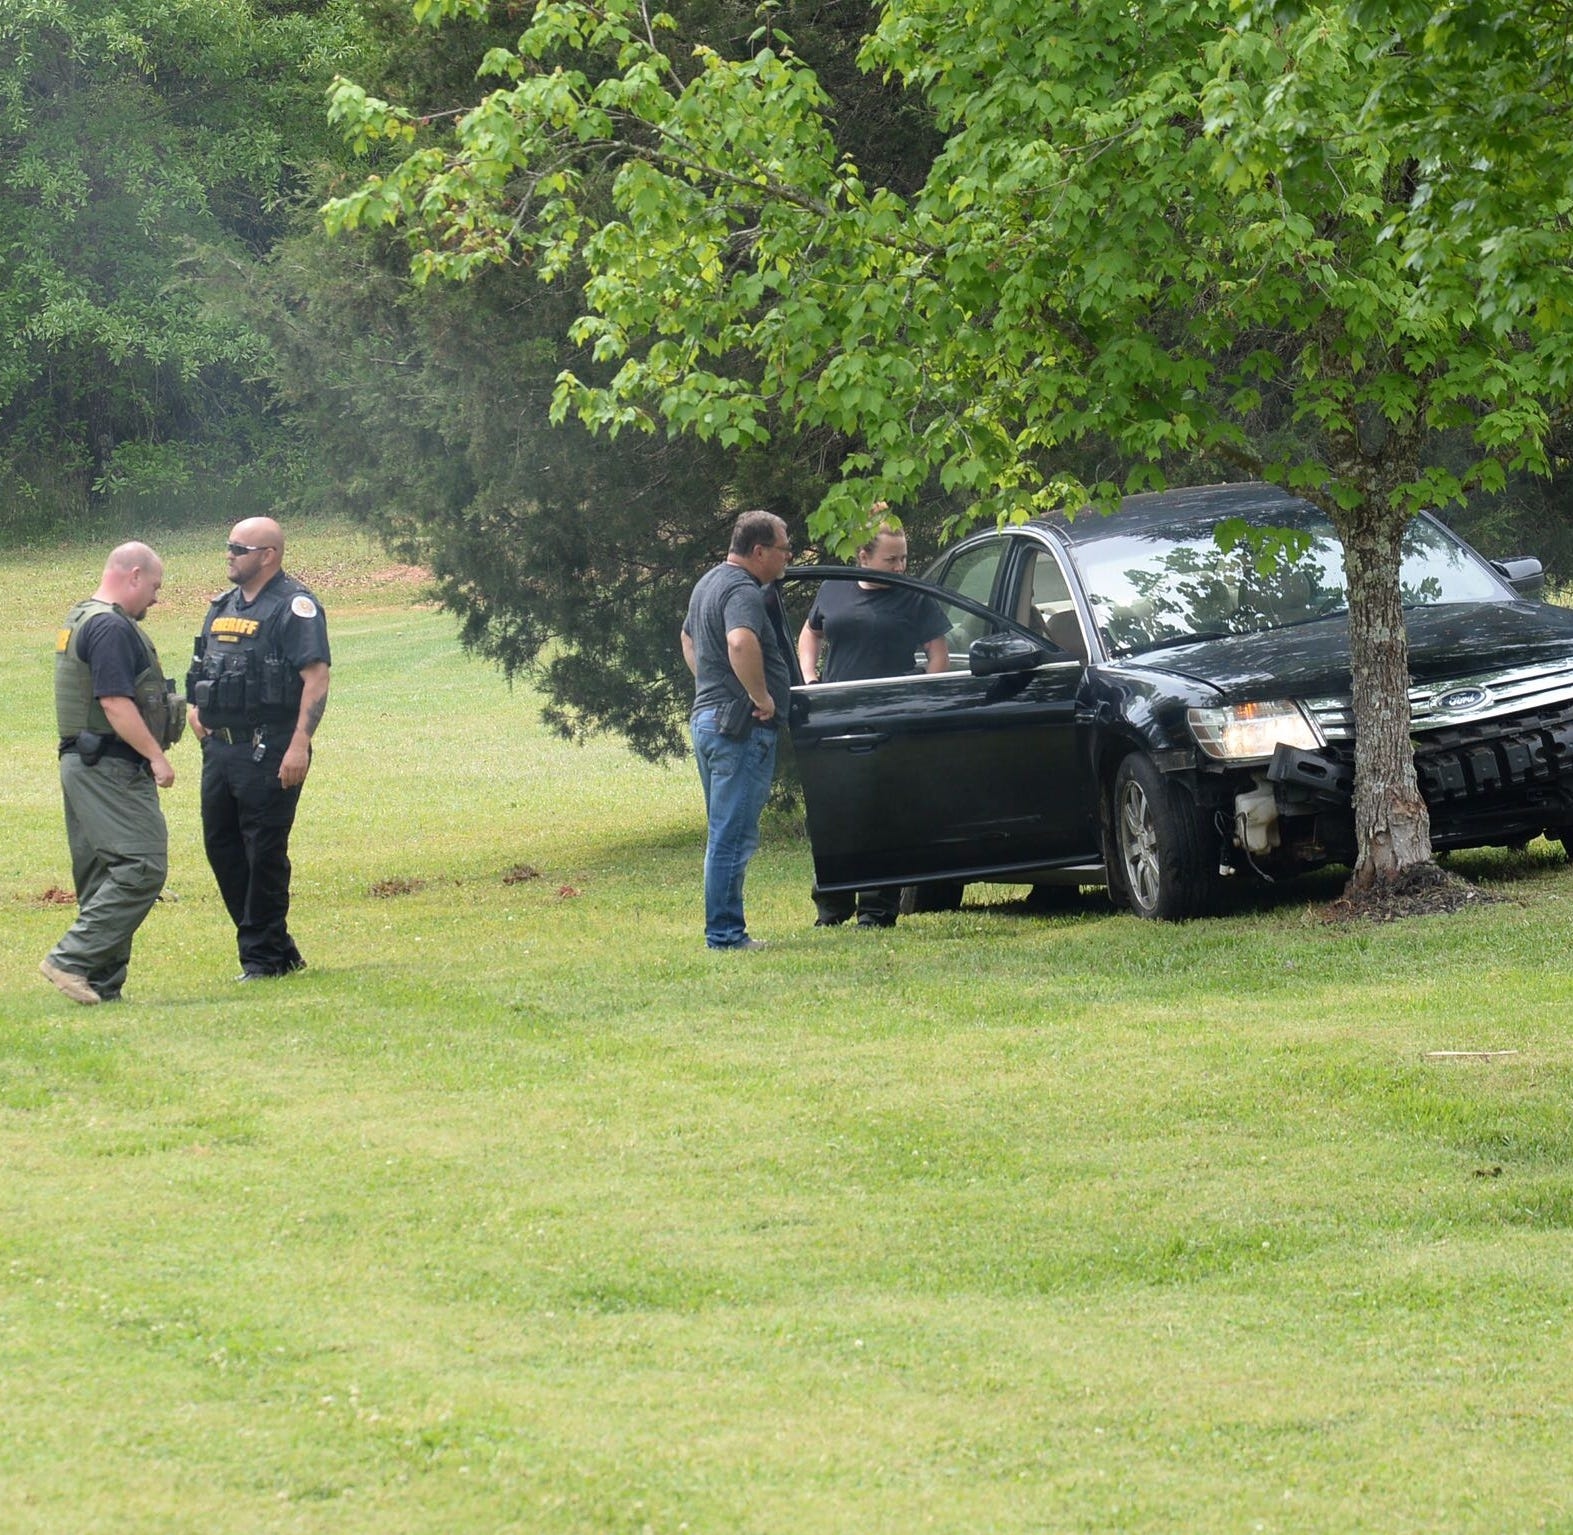 SLED called in to investigate shooting after Greenville carjacking and chase in Belton